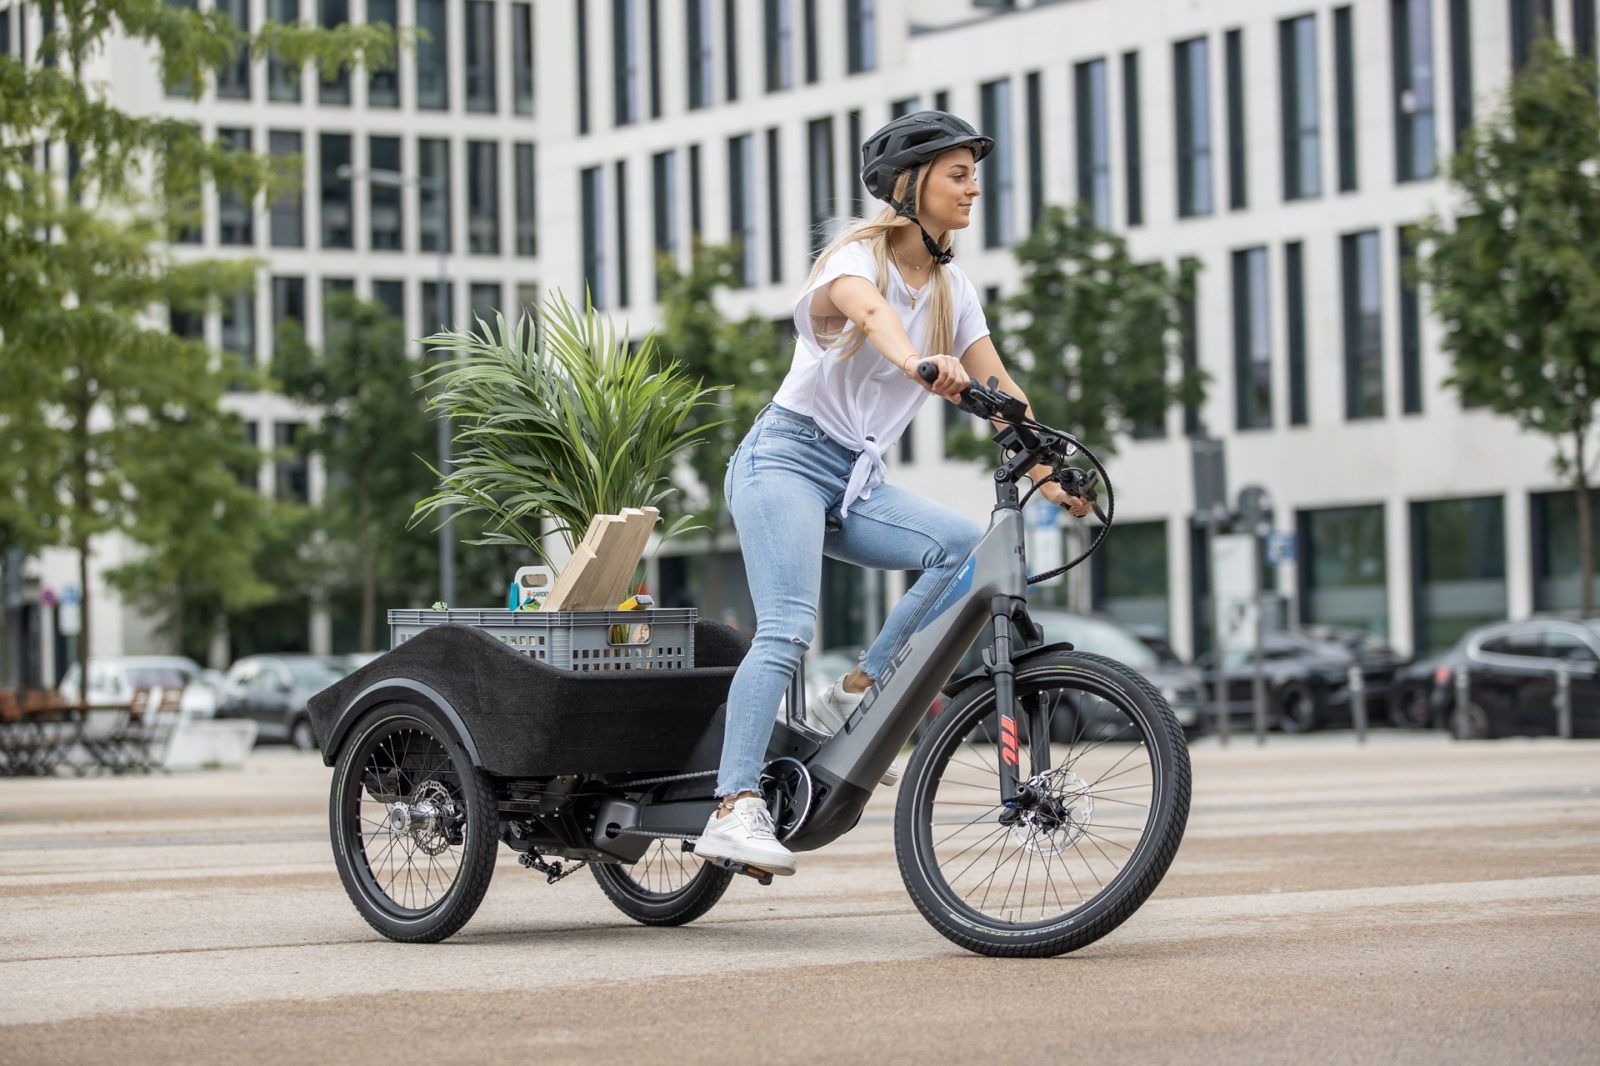 cube-and-soflow-to-make-bmw-designed-e-scooter-and-three-wheeled-cargo-bike